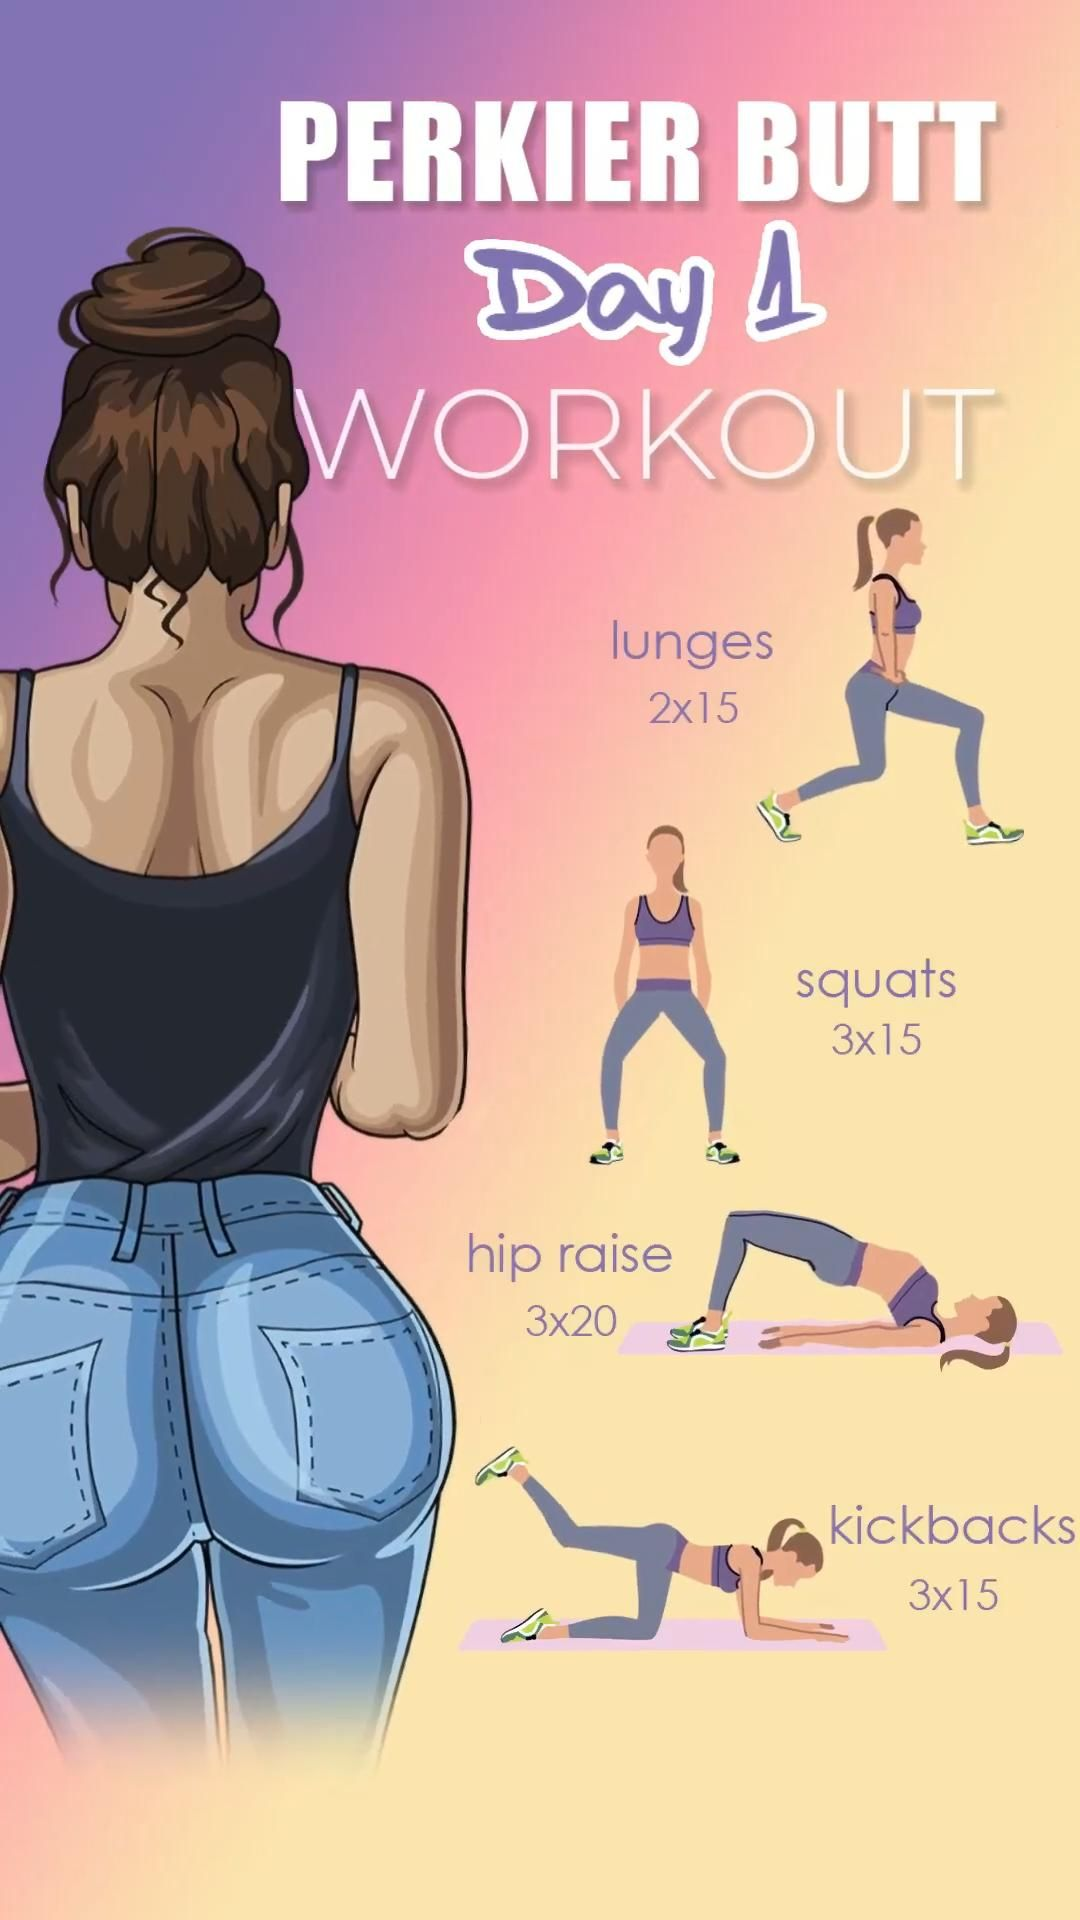 booty workout!